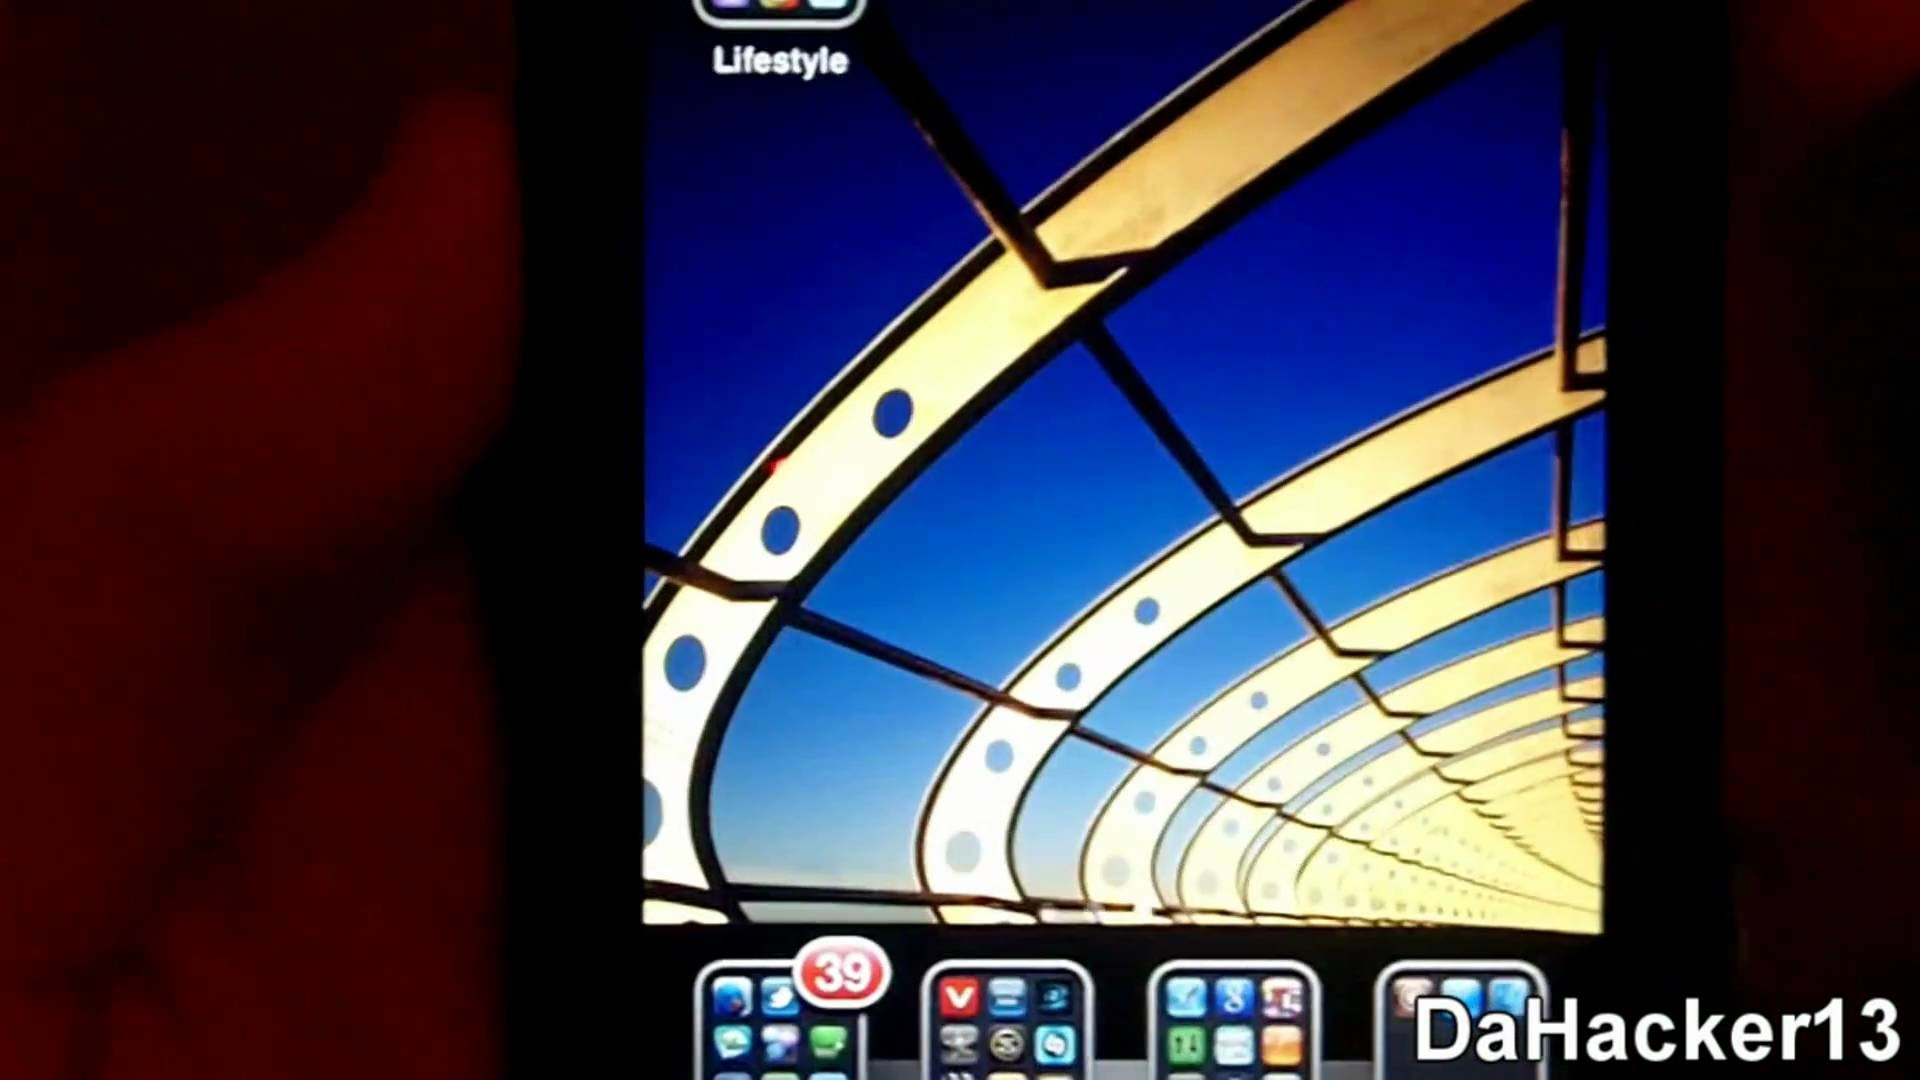 How To Get Parallax For Your iPhone/iPod Touch! **PANORAMIC WALLPAPERS FOR  YOUR IDEVICE**